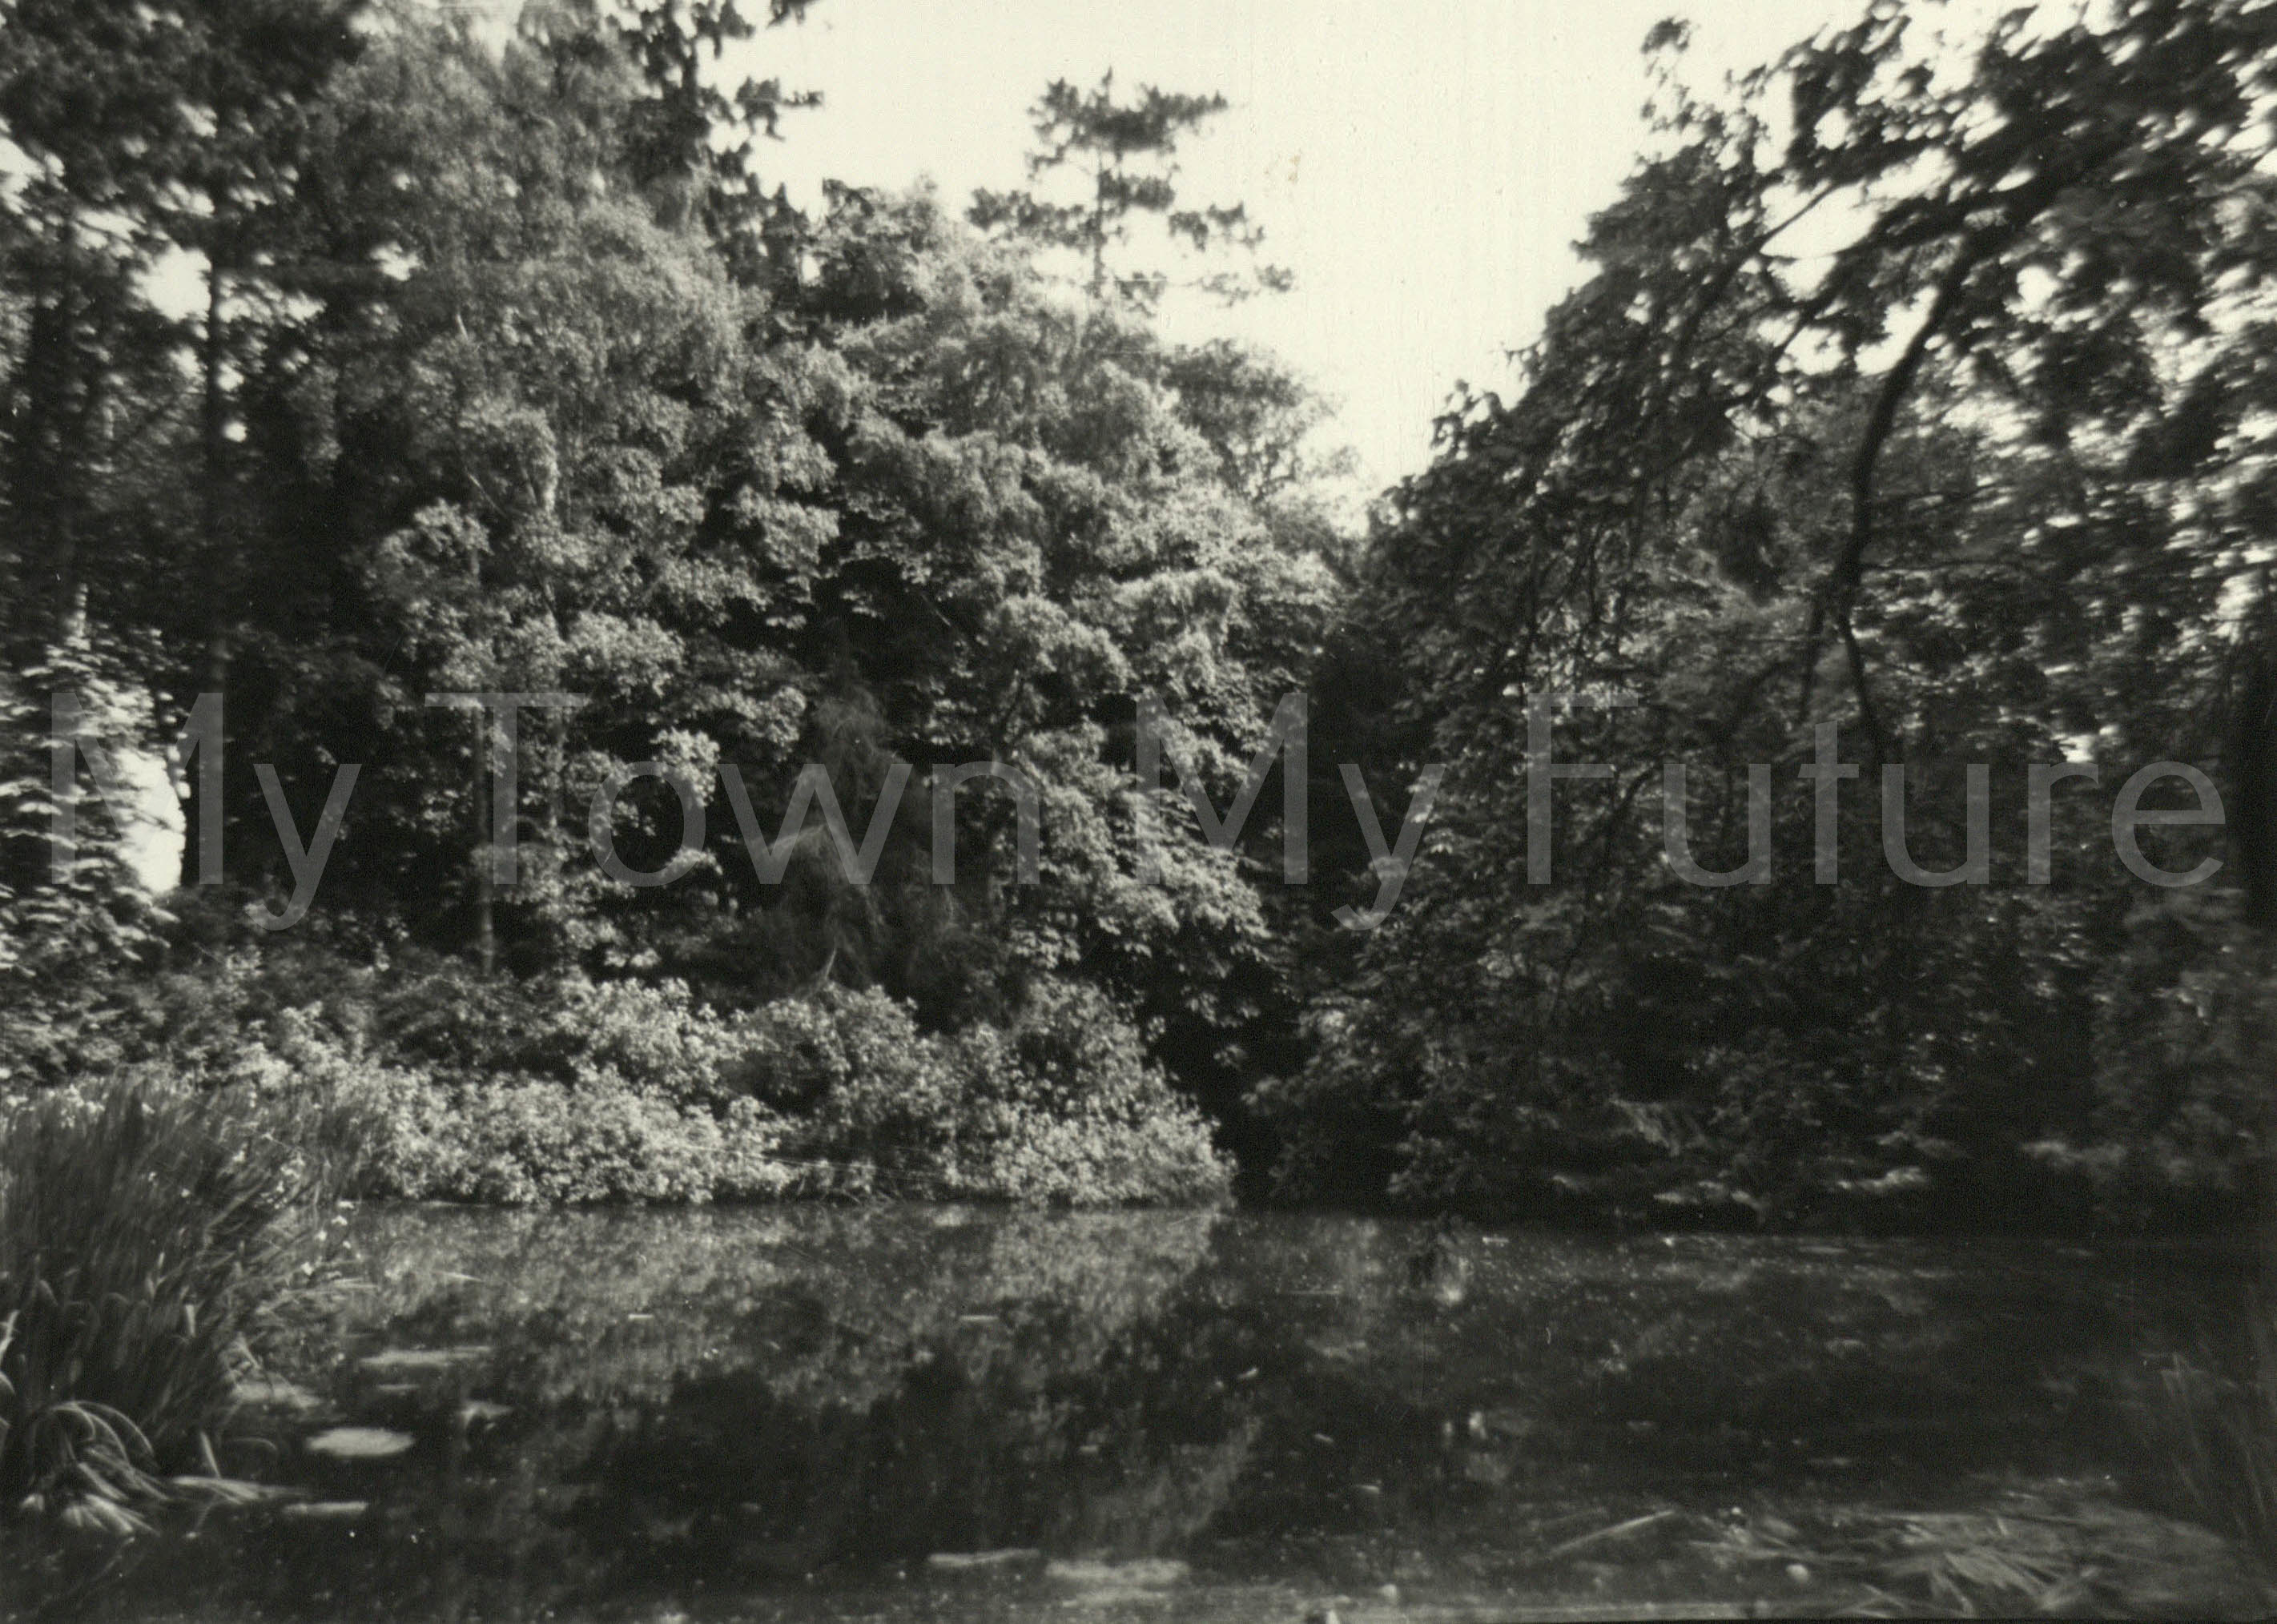 Stewart Park - the day Marton Hall Burned Down, Saturday June 4th 1960